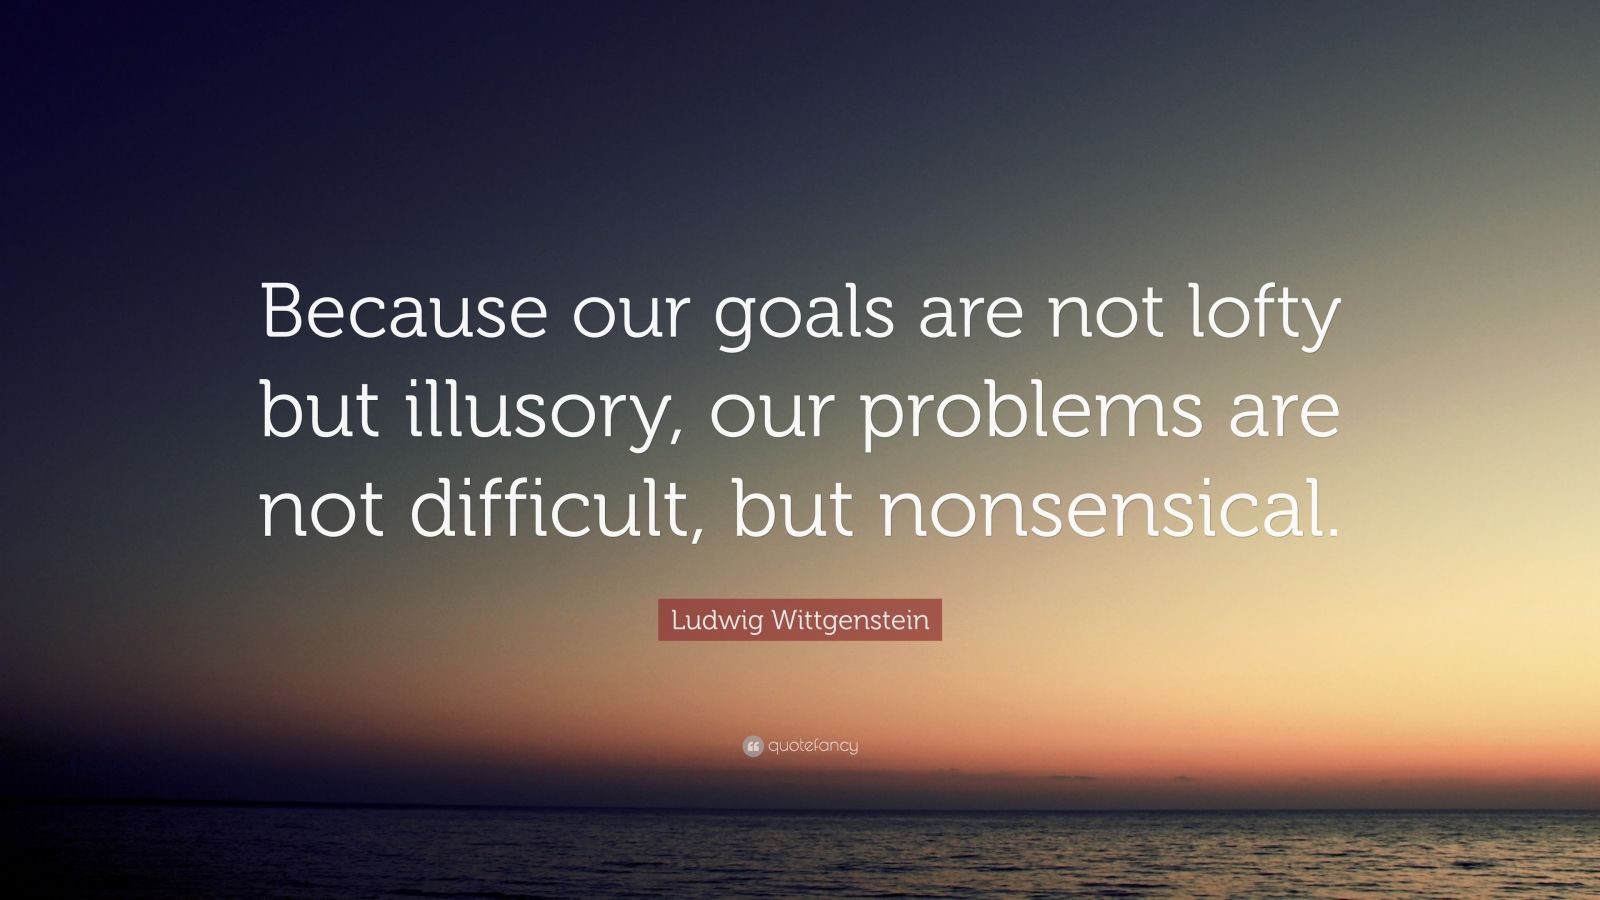 """Ludwig Wittgenstein Quote: """"Because our goals are not lofty but illusory, our problems are not difficult, but nonsensical."""""""